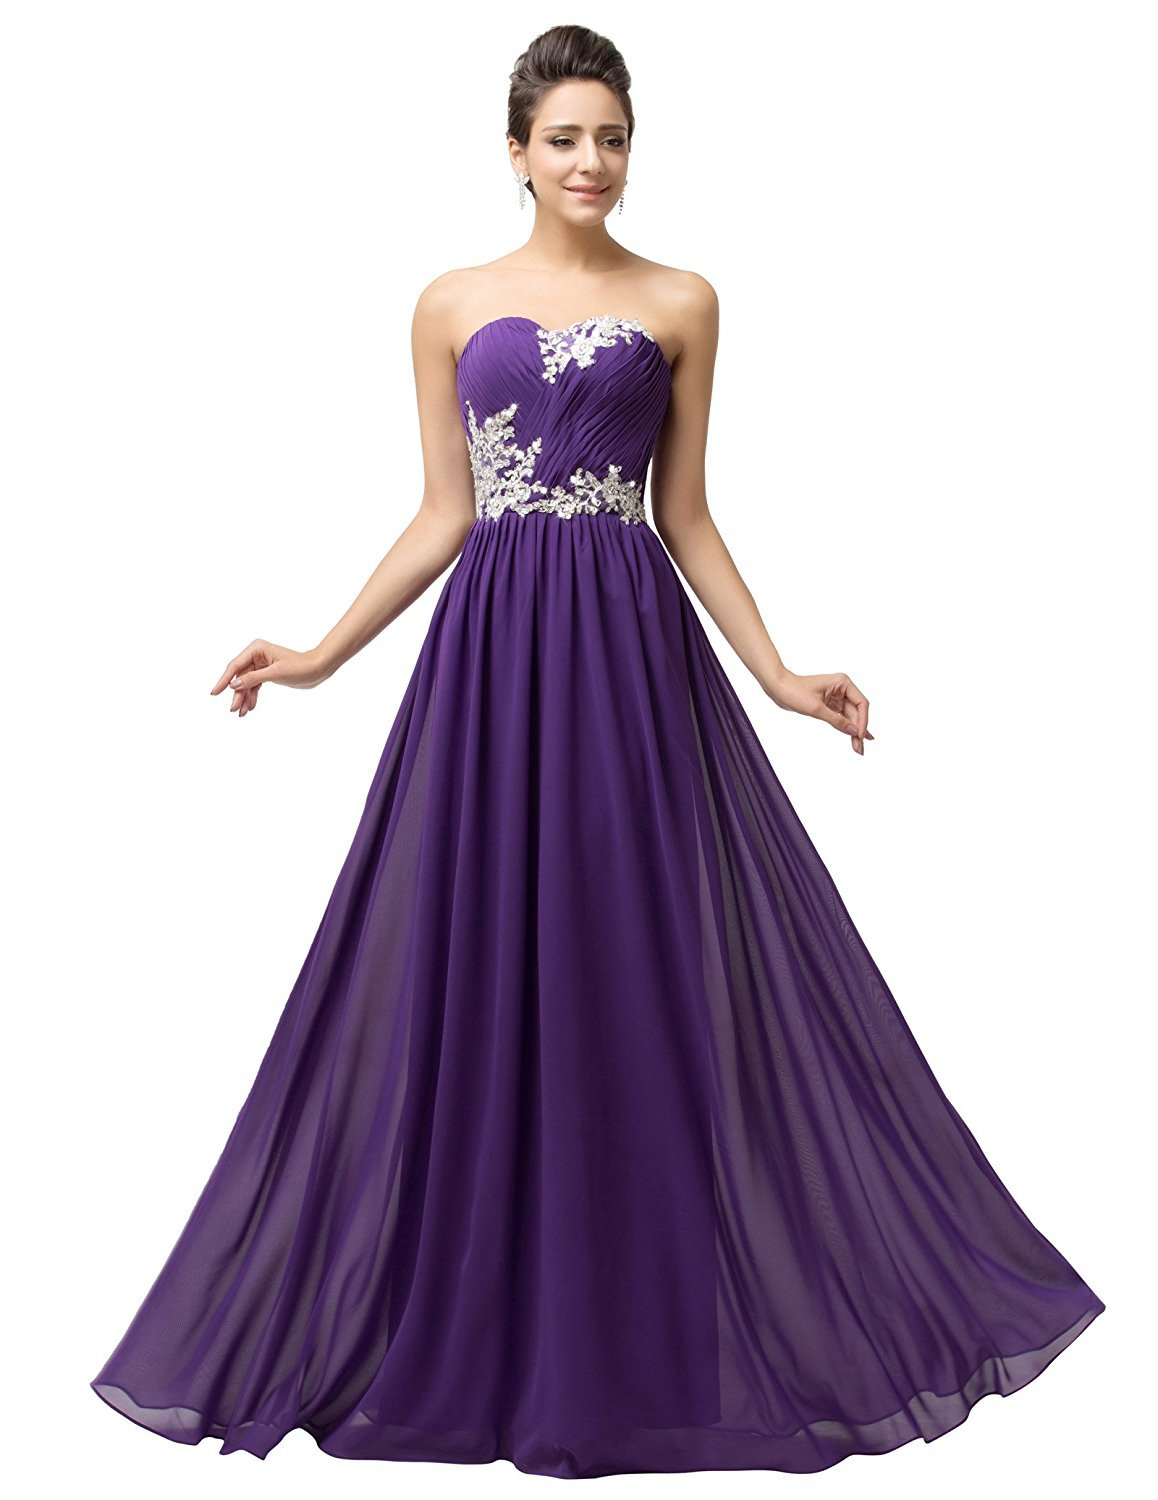 Primary image for 2018 Strapless Evening Dress Appliques Purple Chiffon Long Prom Dress Party Gown